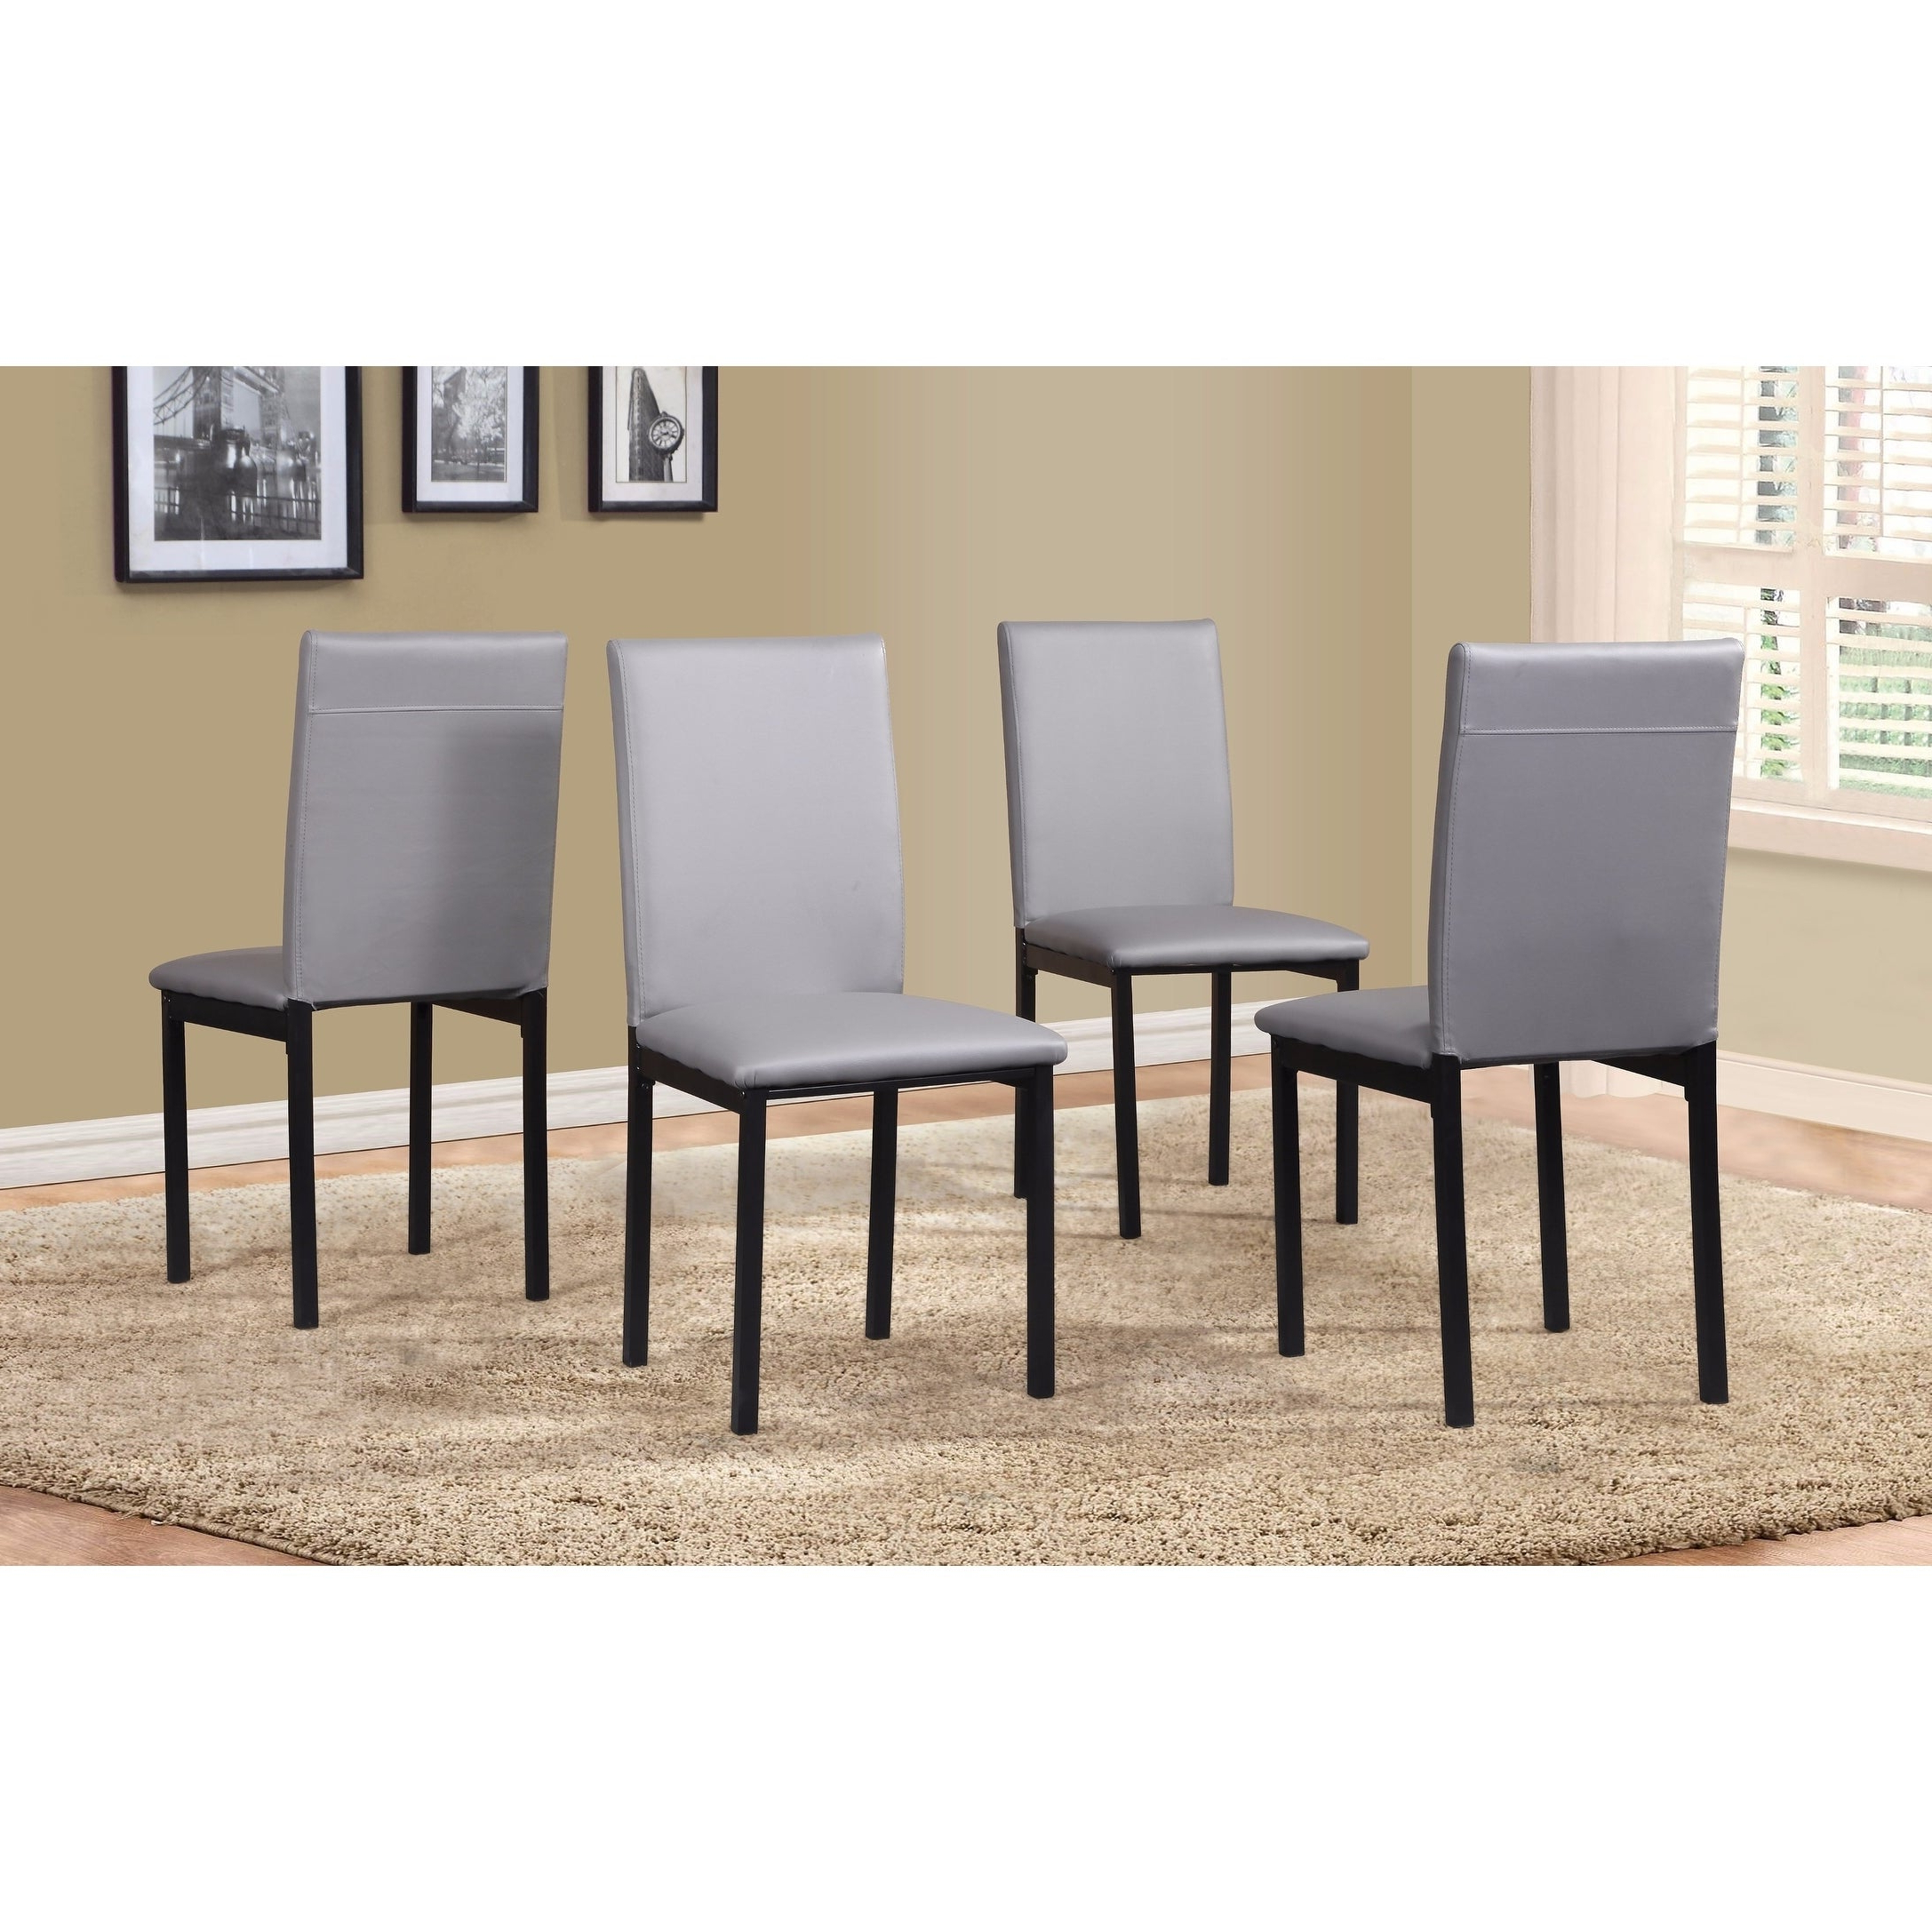 Noyes 5 Piece Dining Sets Inside 2020 Shop Noyes Faux Leather Seat Metal Frame Black Dining Chairs, Set Of (View 19 of 25)